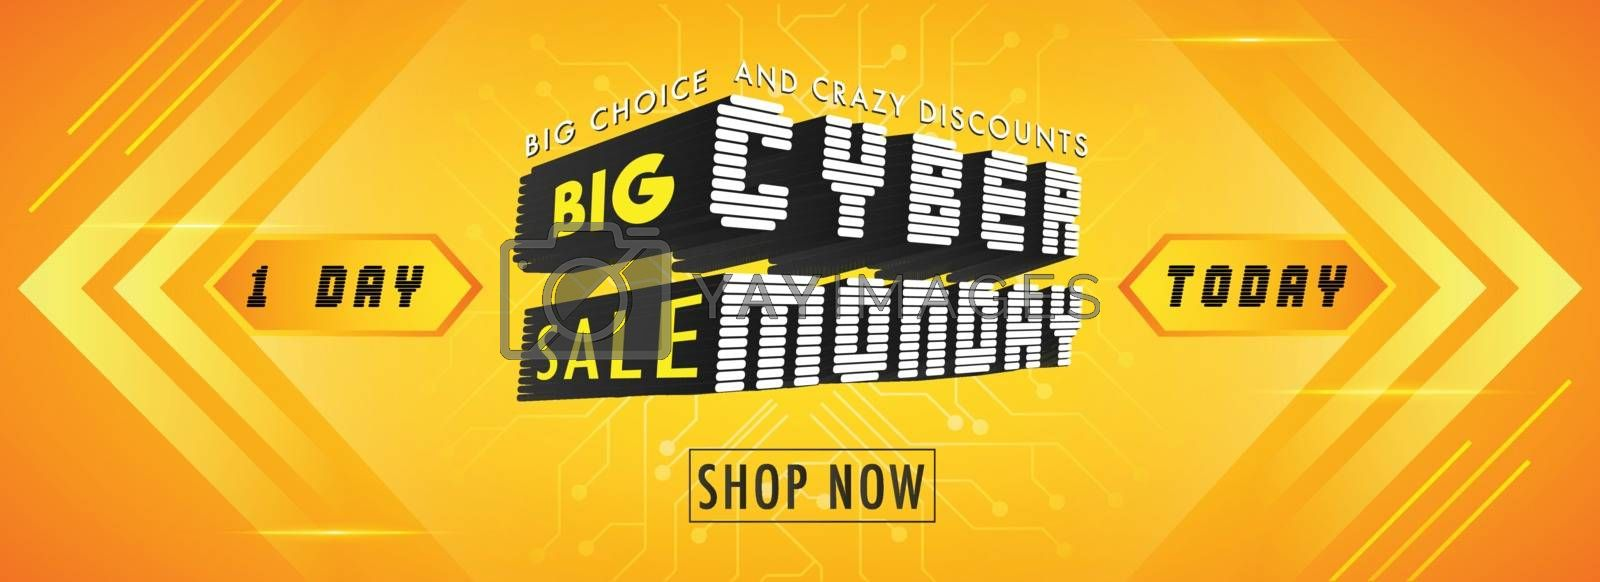 Big Sale advertising banner design with 3D creative text Cyber Monday on orange background.